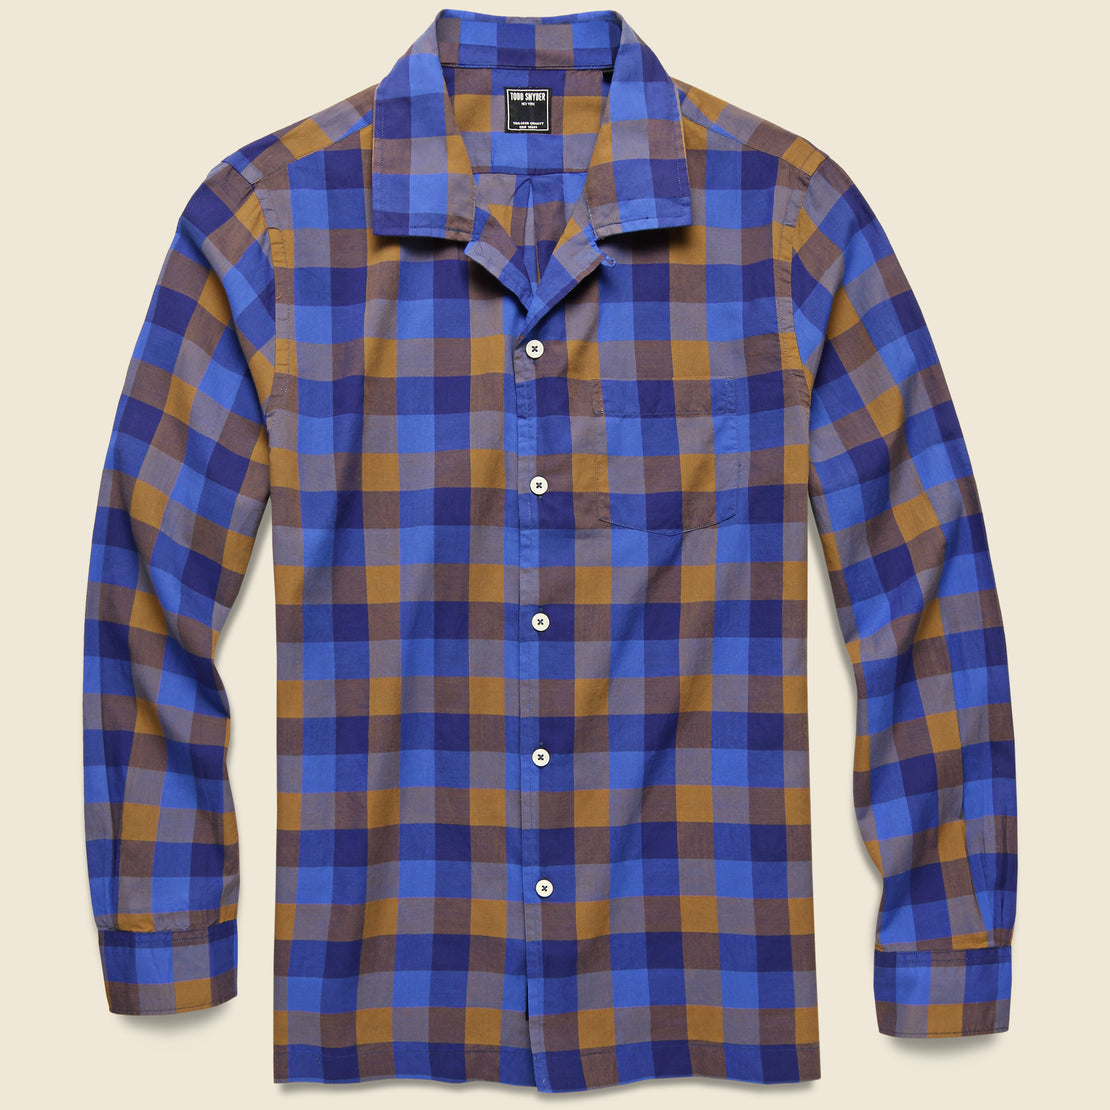 Todd Snyder Chestnut Plaid Camp Shirt - Blue